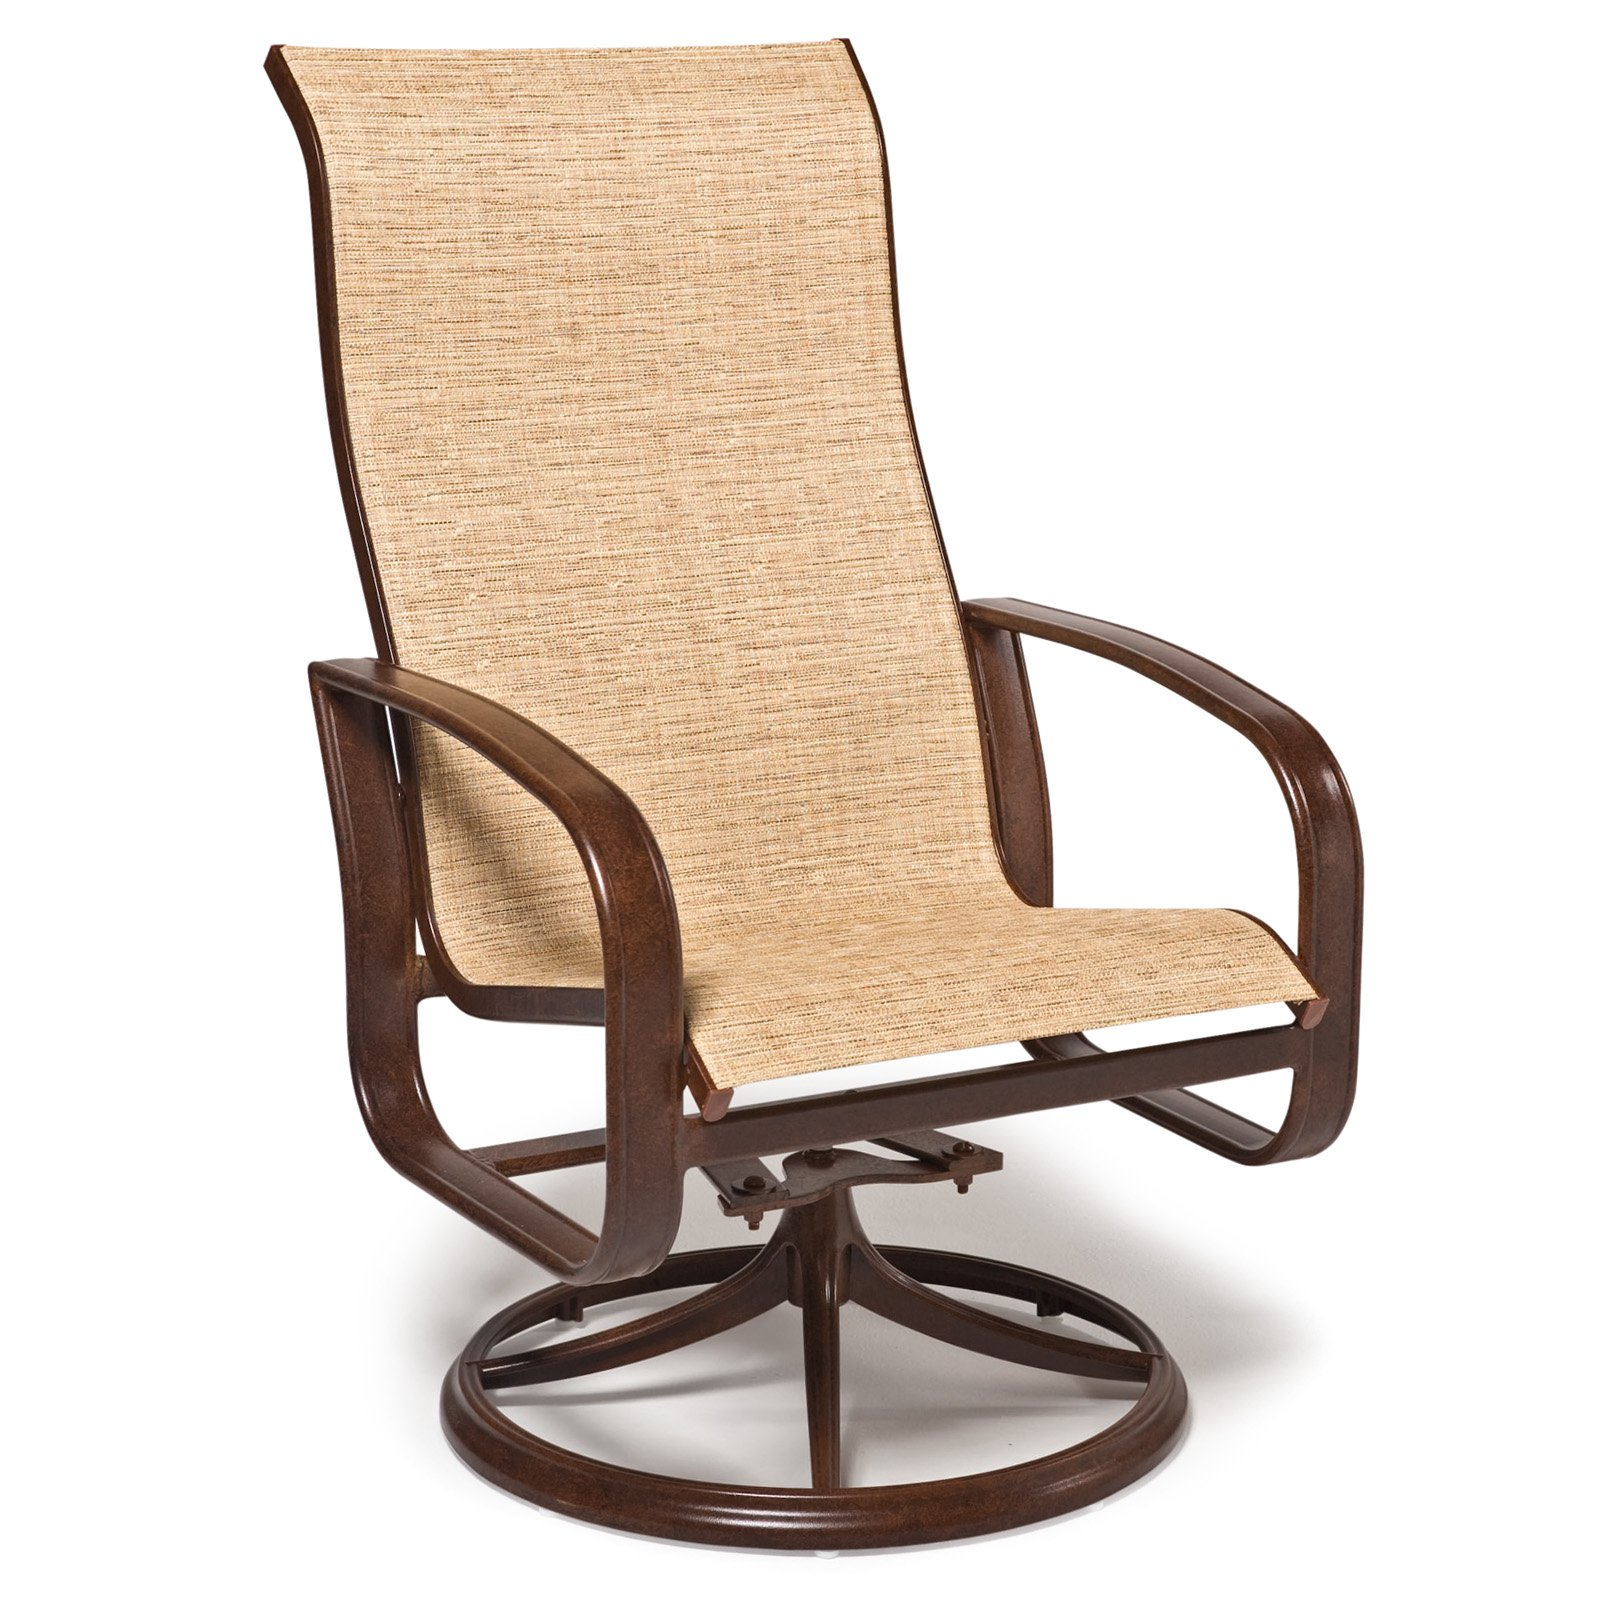 Luxury Swivel Patio Chair